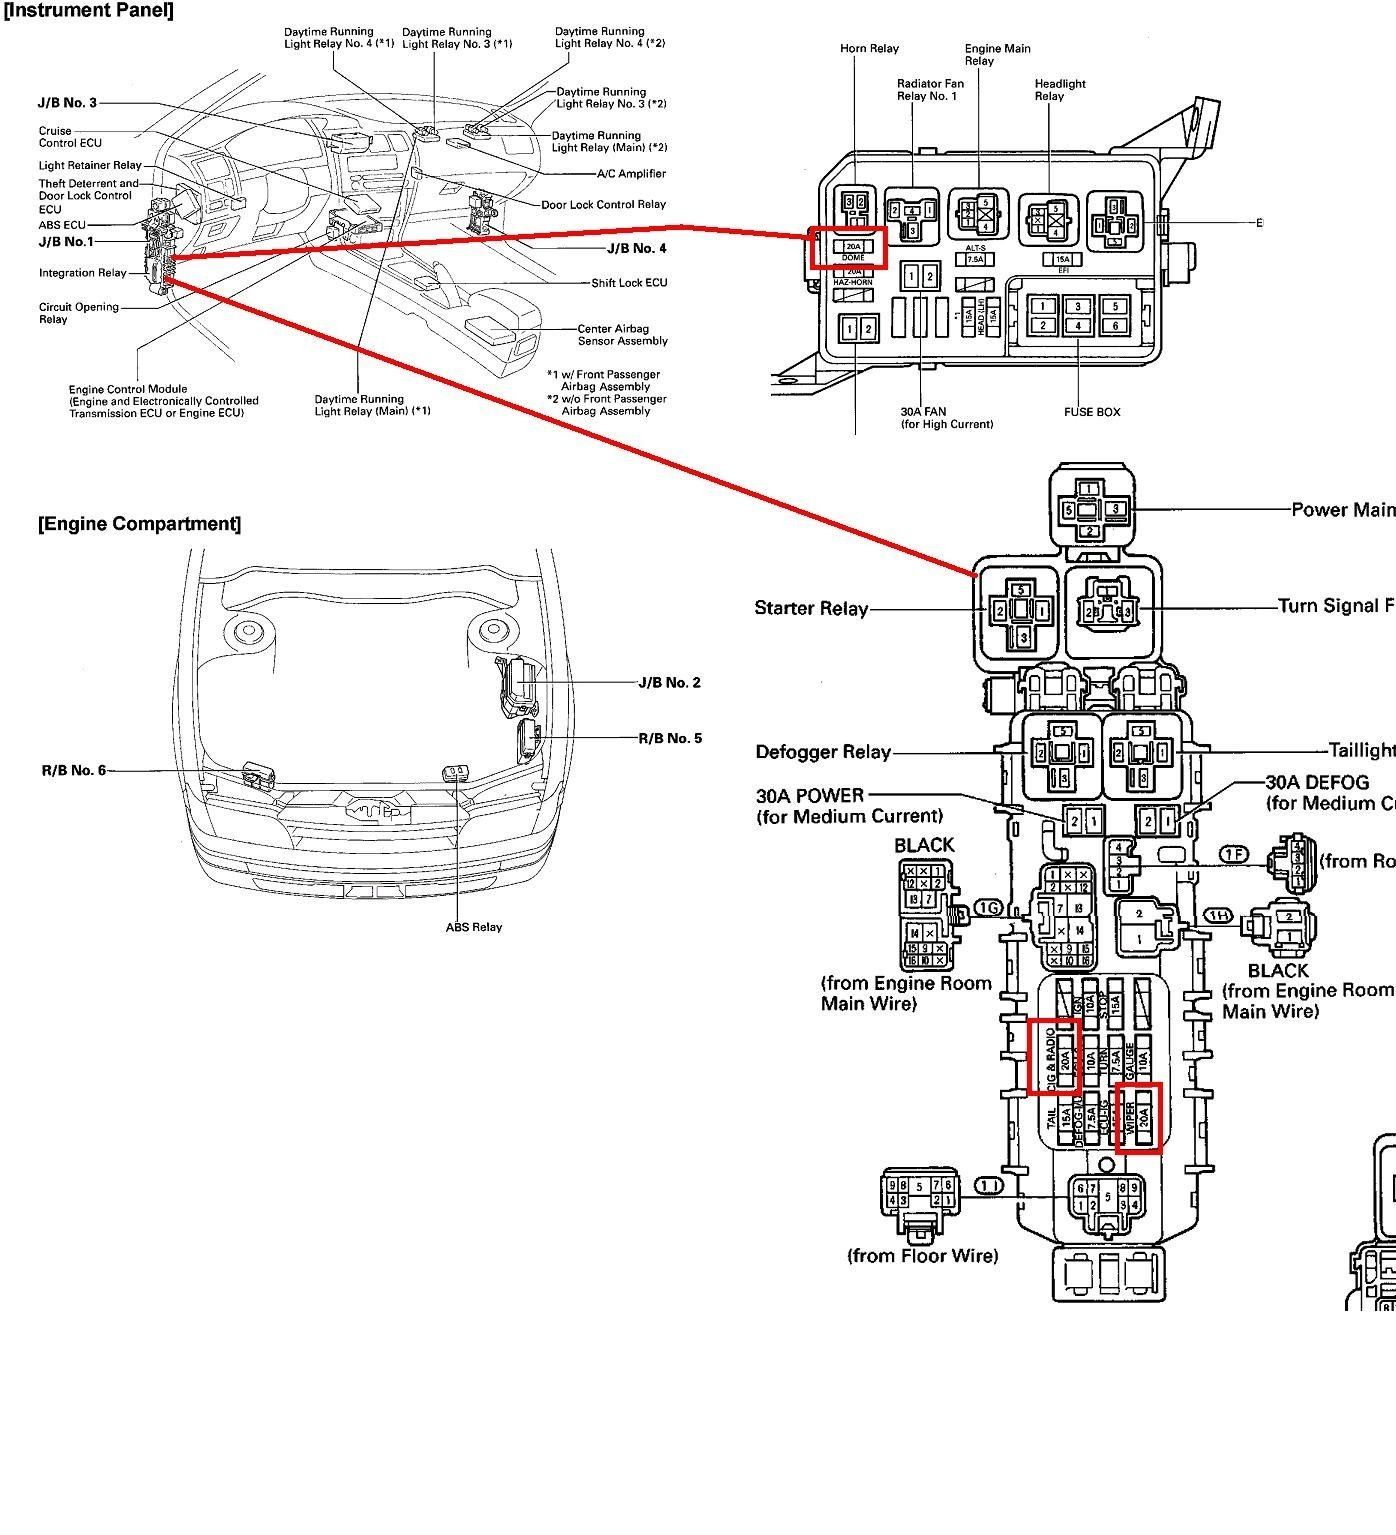 Toyota Corolla Engine Diagram 2004 Corolla Wiring Harness Another Blog About Wiring Diagram • Of Toyota Corolla Engine Diagram